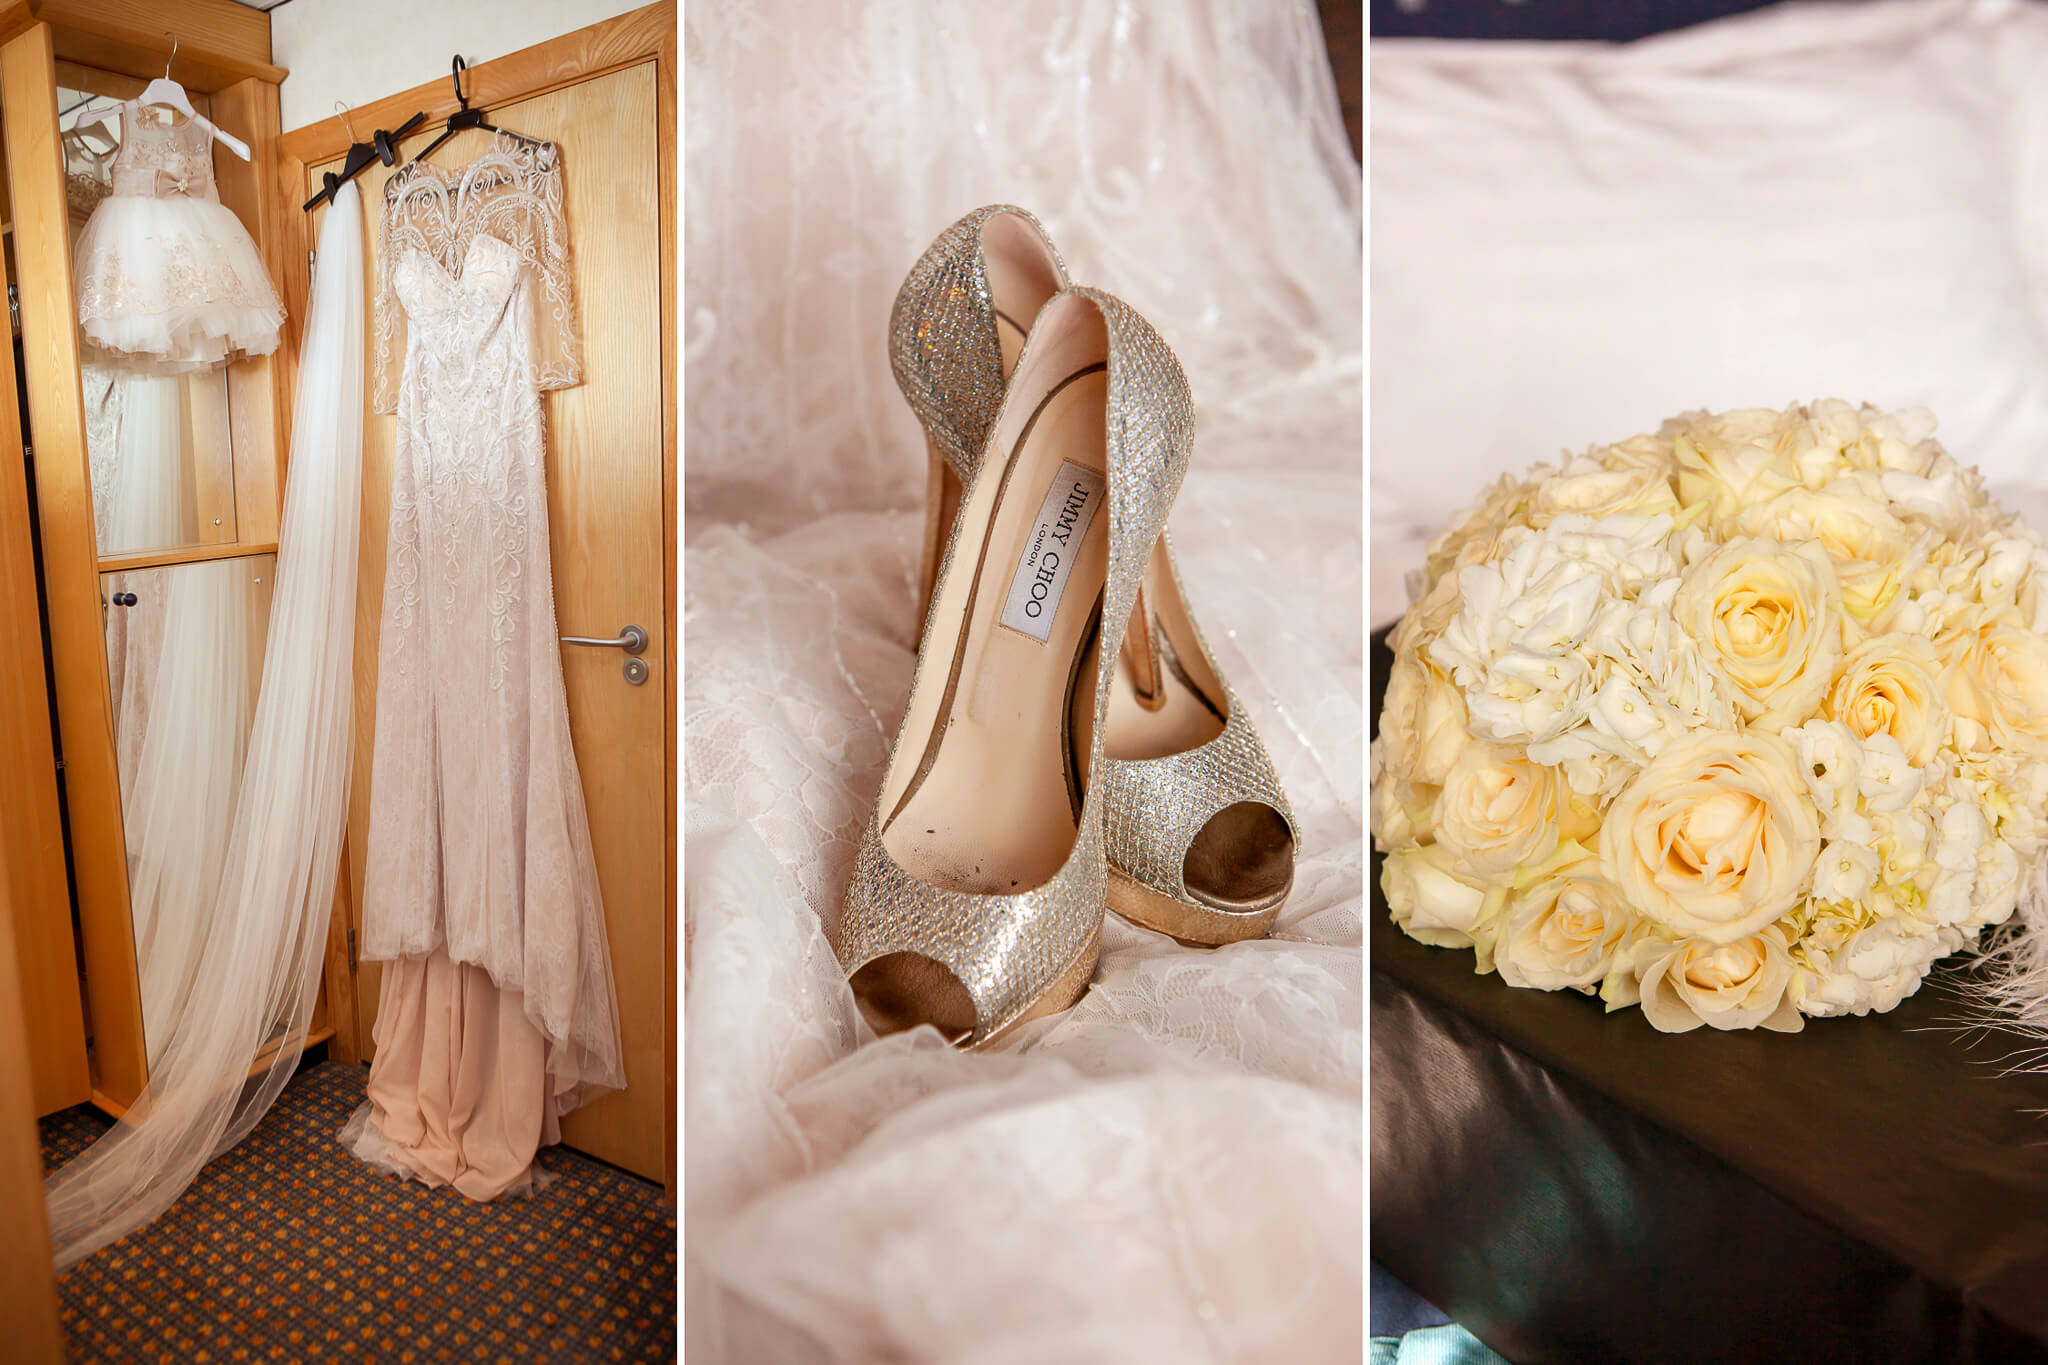 bolton-school-wedding-photographer-stanbury-photography-001